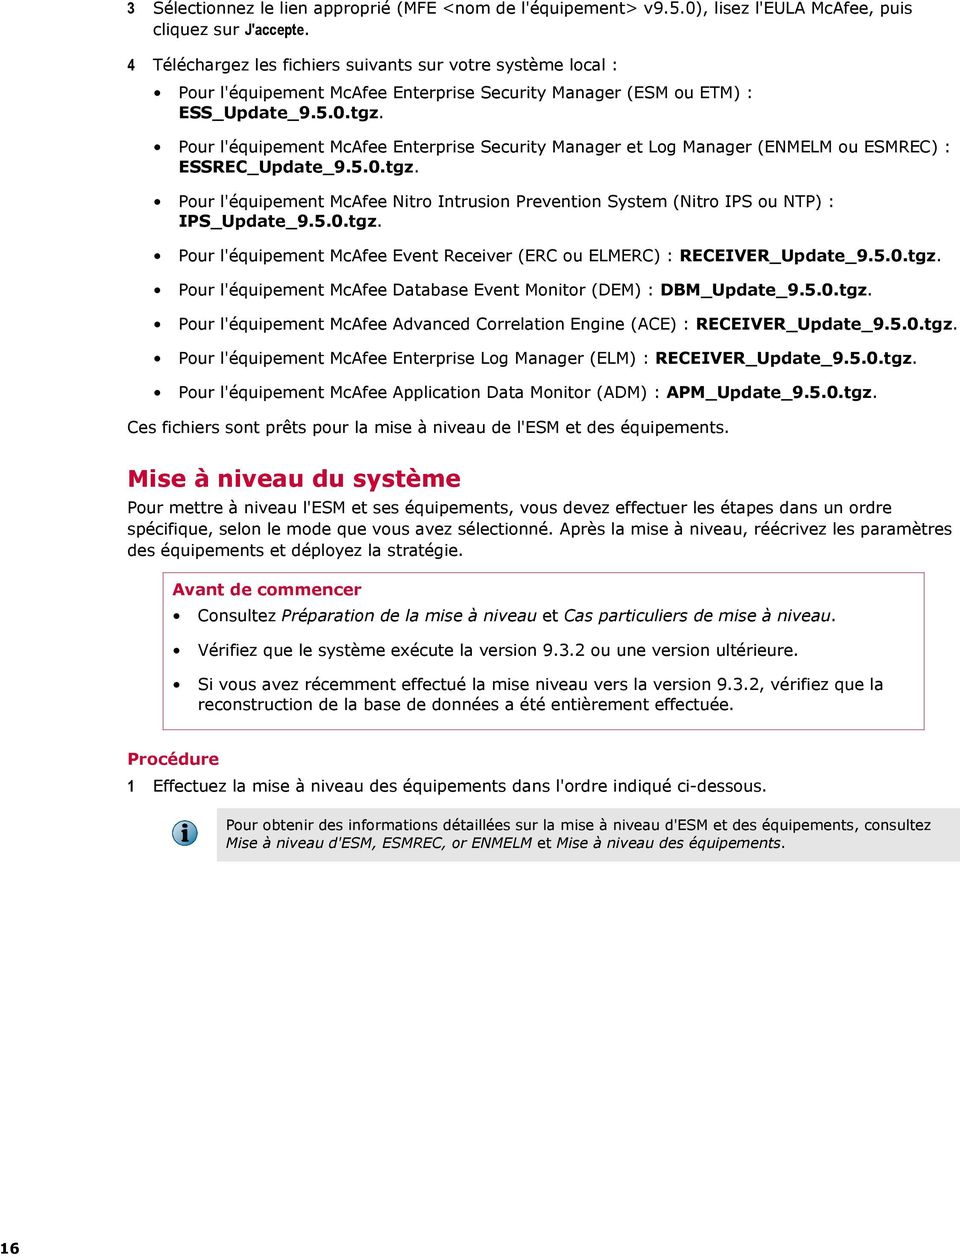 Pour l'équipement McAfee Enterprise Security Manager et Log Manager (ENMELM ou ESMREC) : ESSREC_Update_9.5.0.tgz.